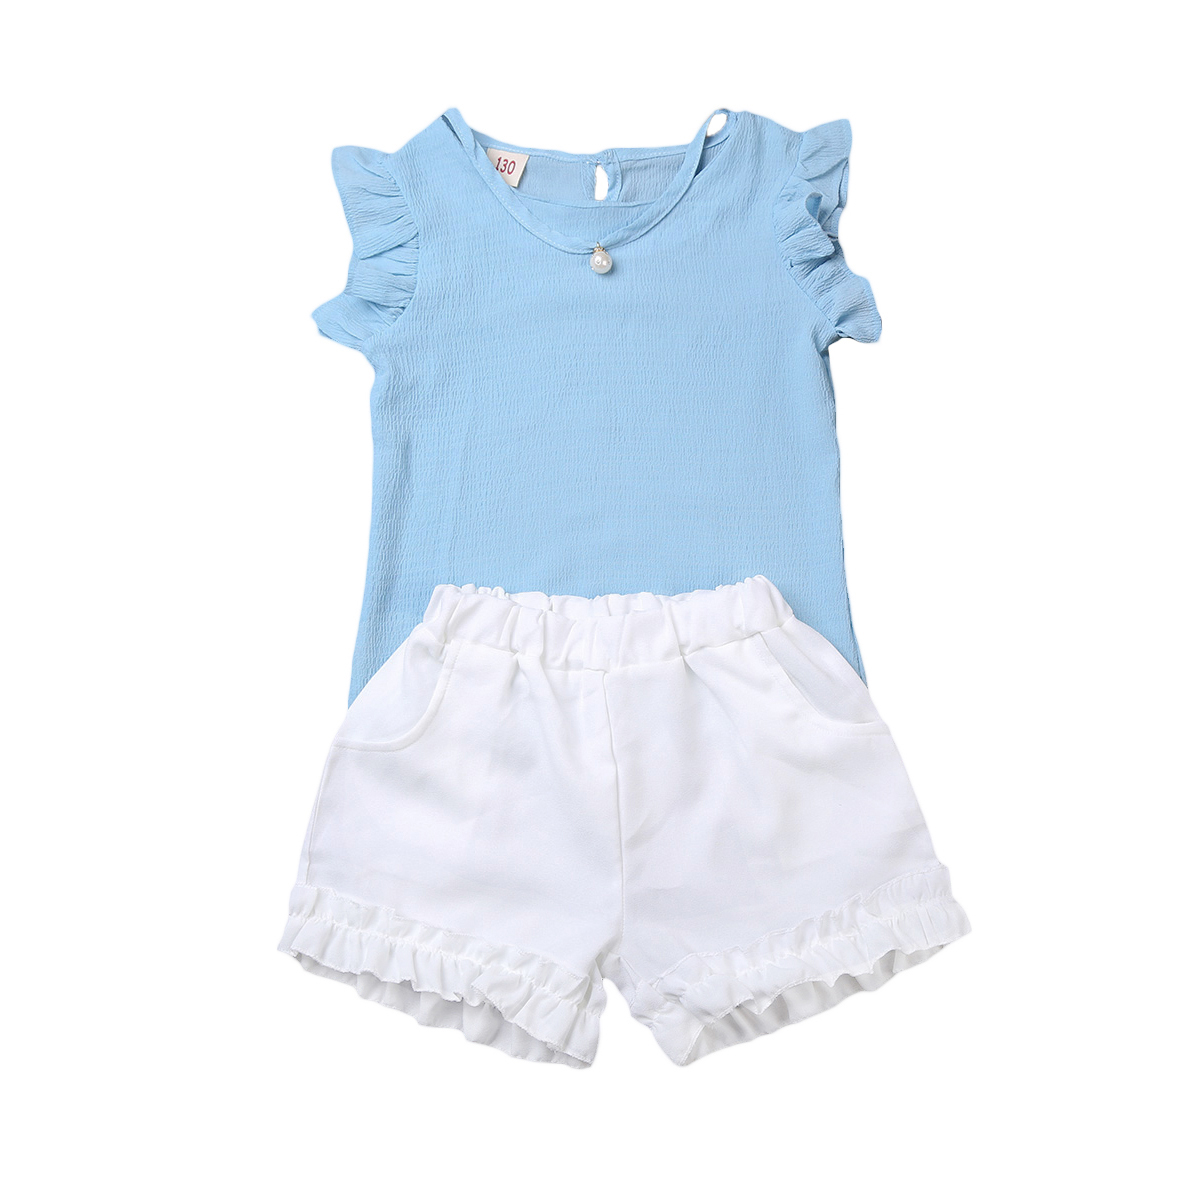 2PCS Toddler Kids Baby Girls Summer Chiffon Outfit Clothes T-shirt Tops+Shorts Sets clothes Pink Blue 2pcs children outfit clothes kids baby girl off shoulder cotton ruffled sleeve tops striped t shirt blue denim jeans sunsuit set